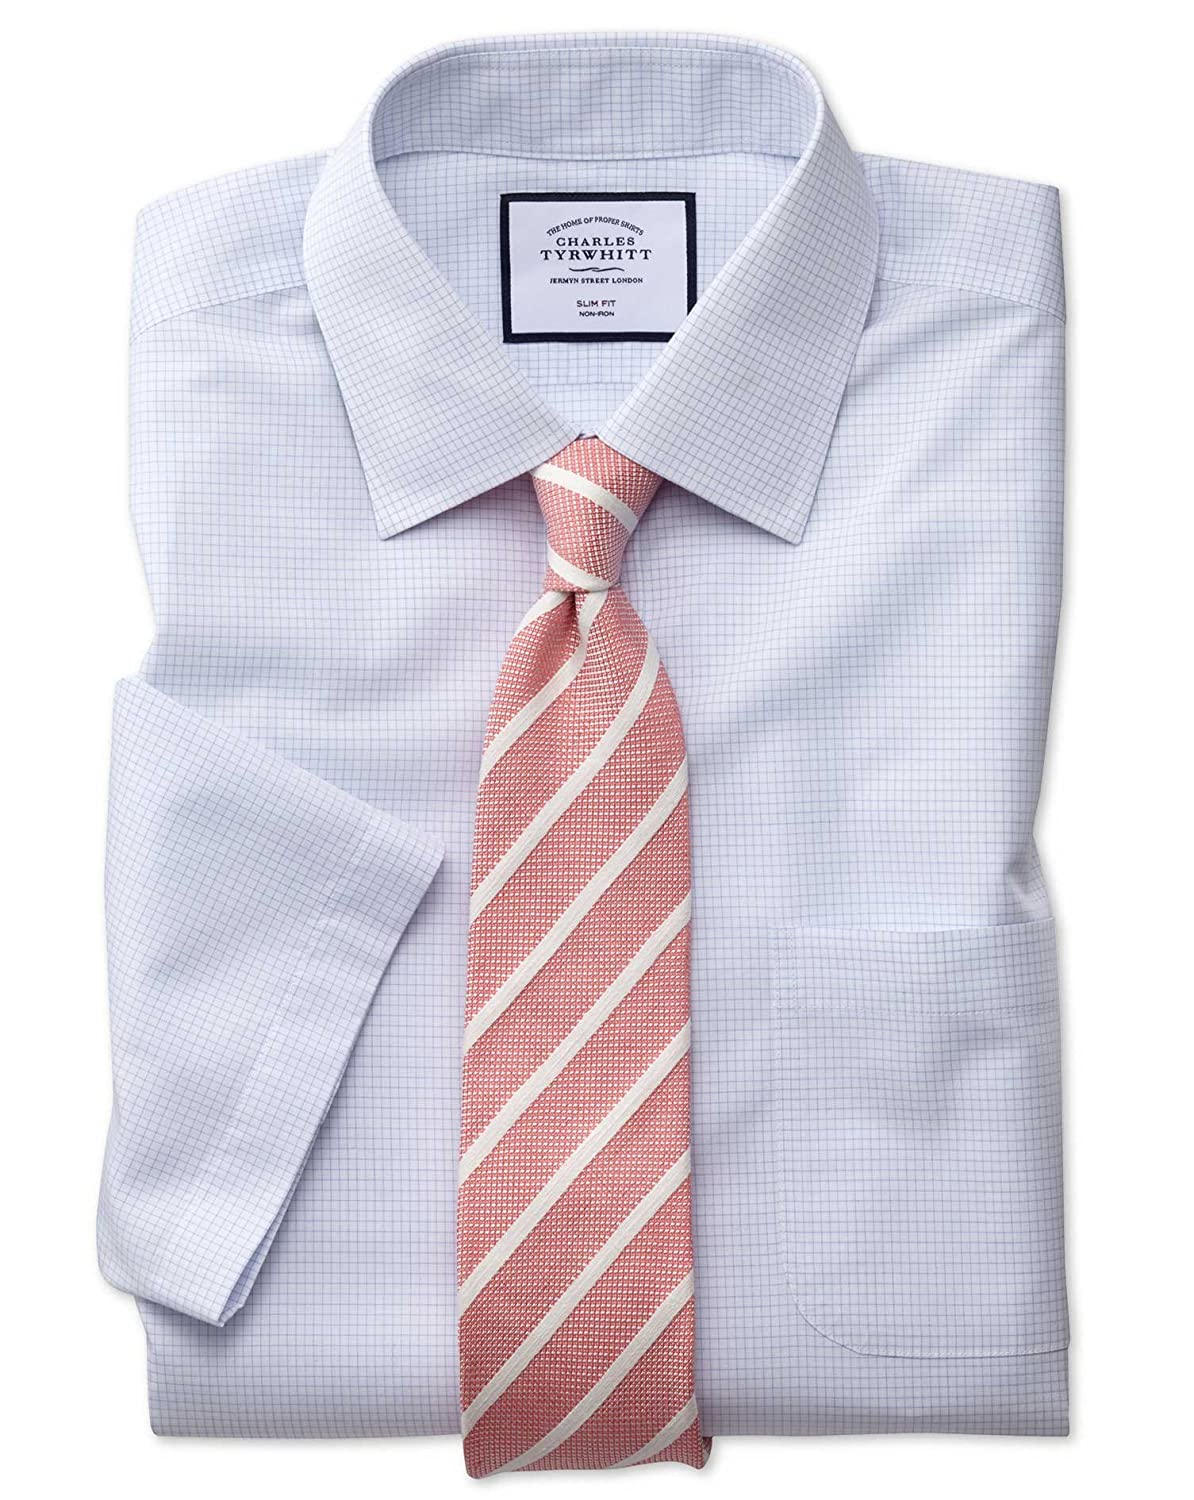 4180ab67f0f Classic Fit Non-Iron Micro Check Short Sleeve Blue Cotton Formal Shirt by  Charles Tyrwhitt  Amazon.co.uk  Clothing